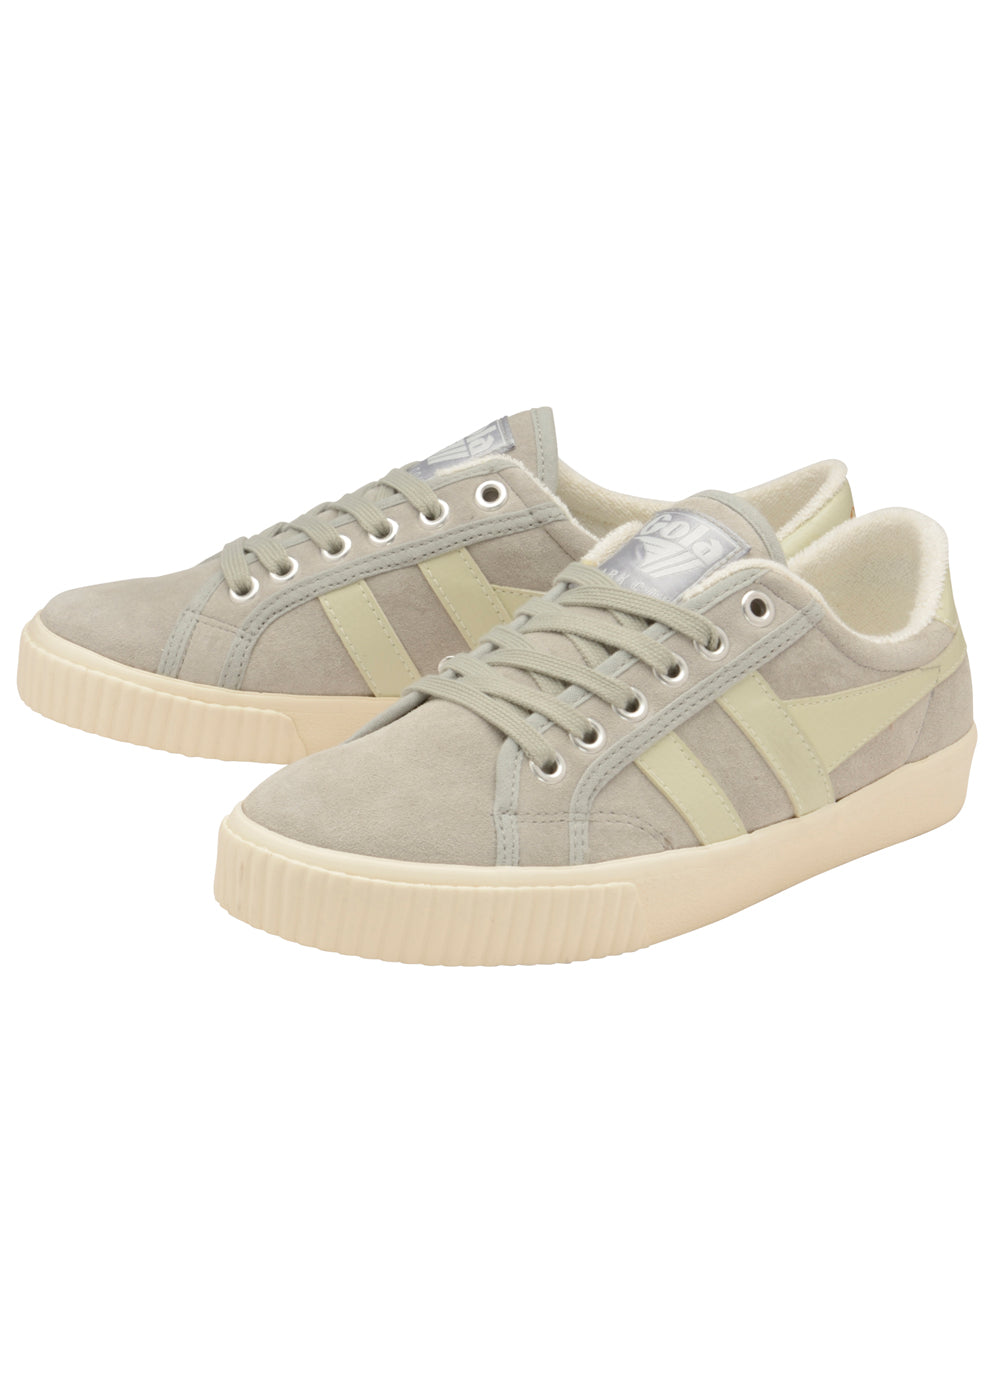 Tennis Mark Suede - Light Grey/Off White - cara cara